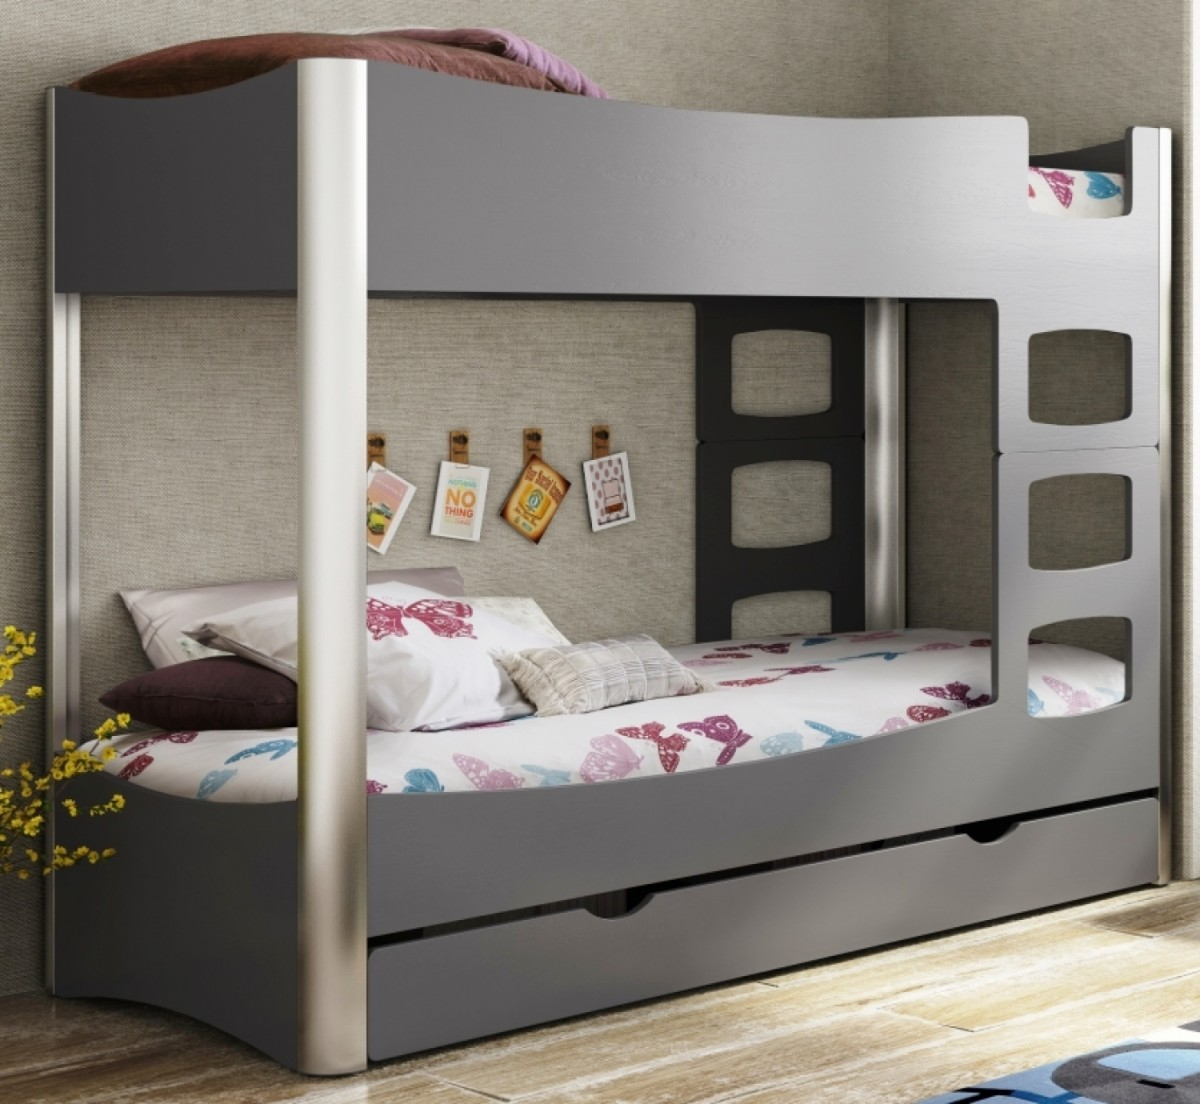 Fusion Pull Out Bed Drawers Mathy By Bols